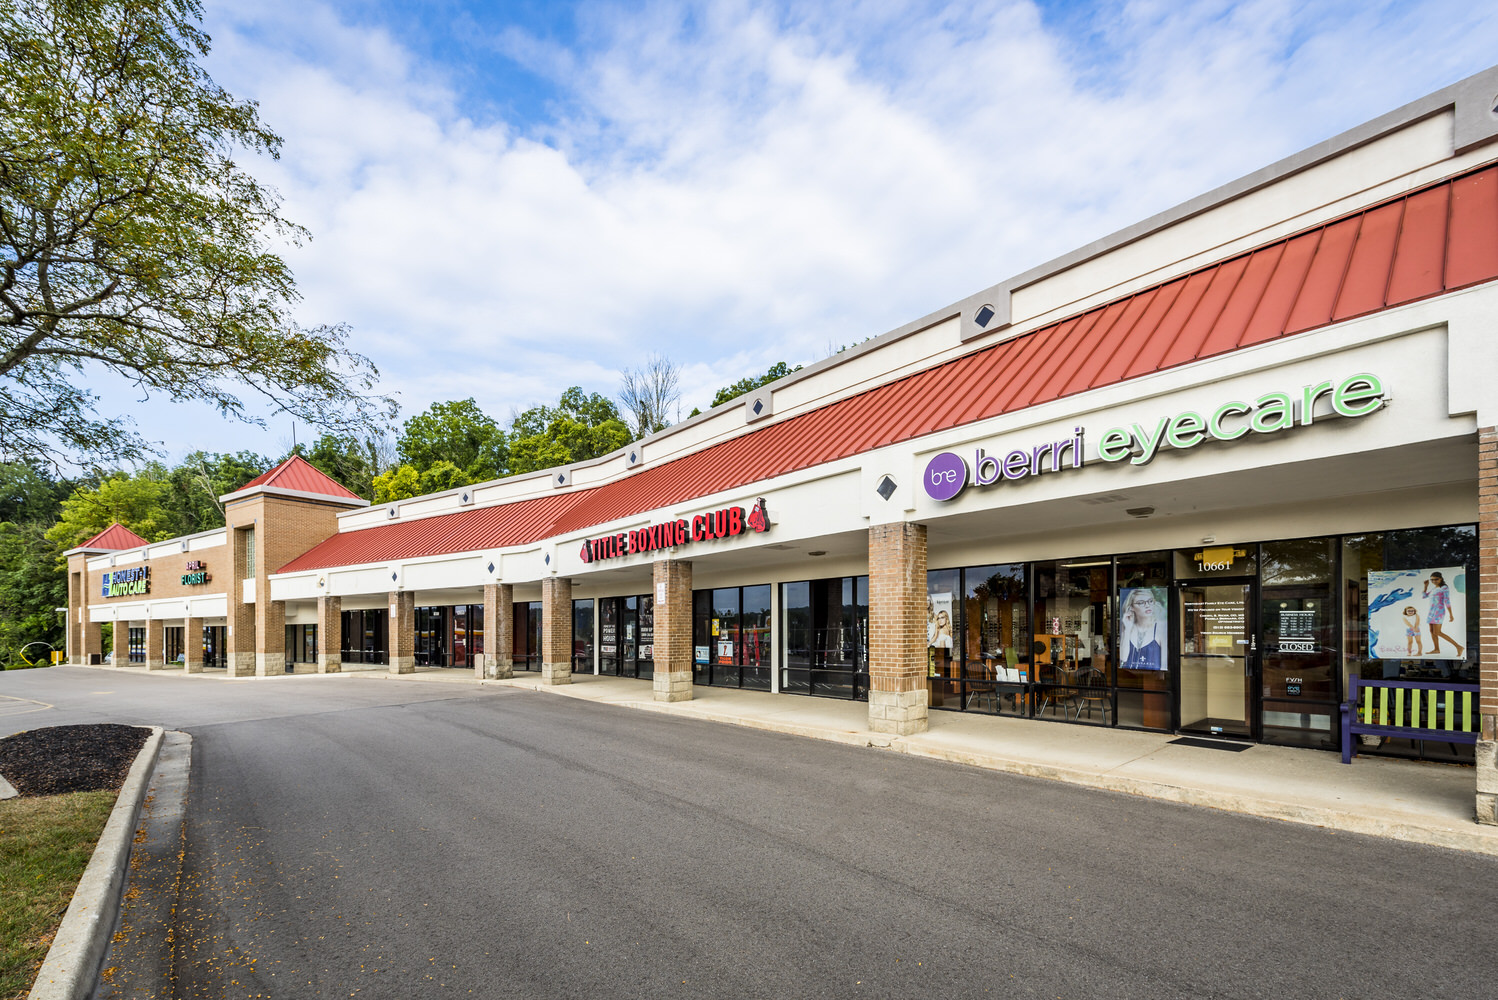 Real Estate, Commercial, Exterior, Shopping Plaza